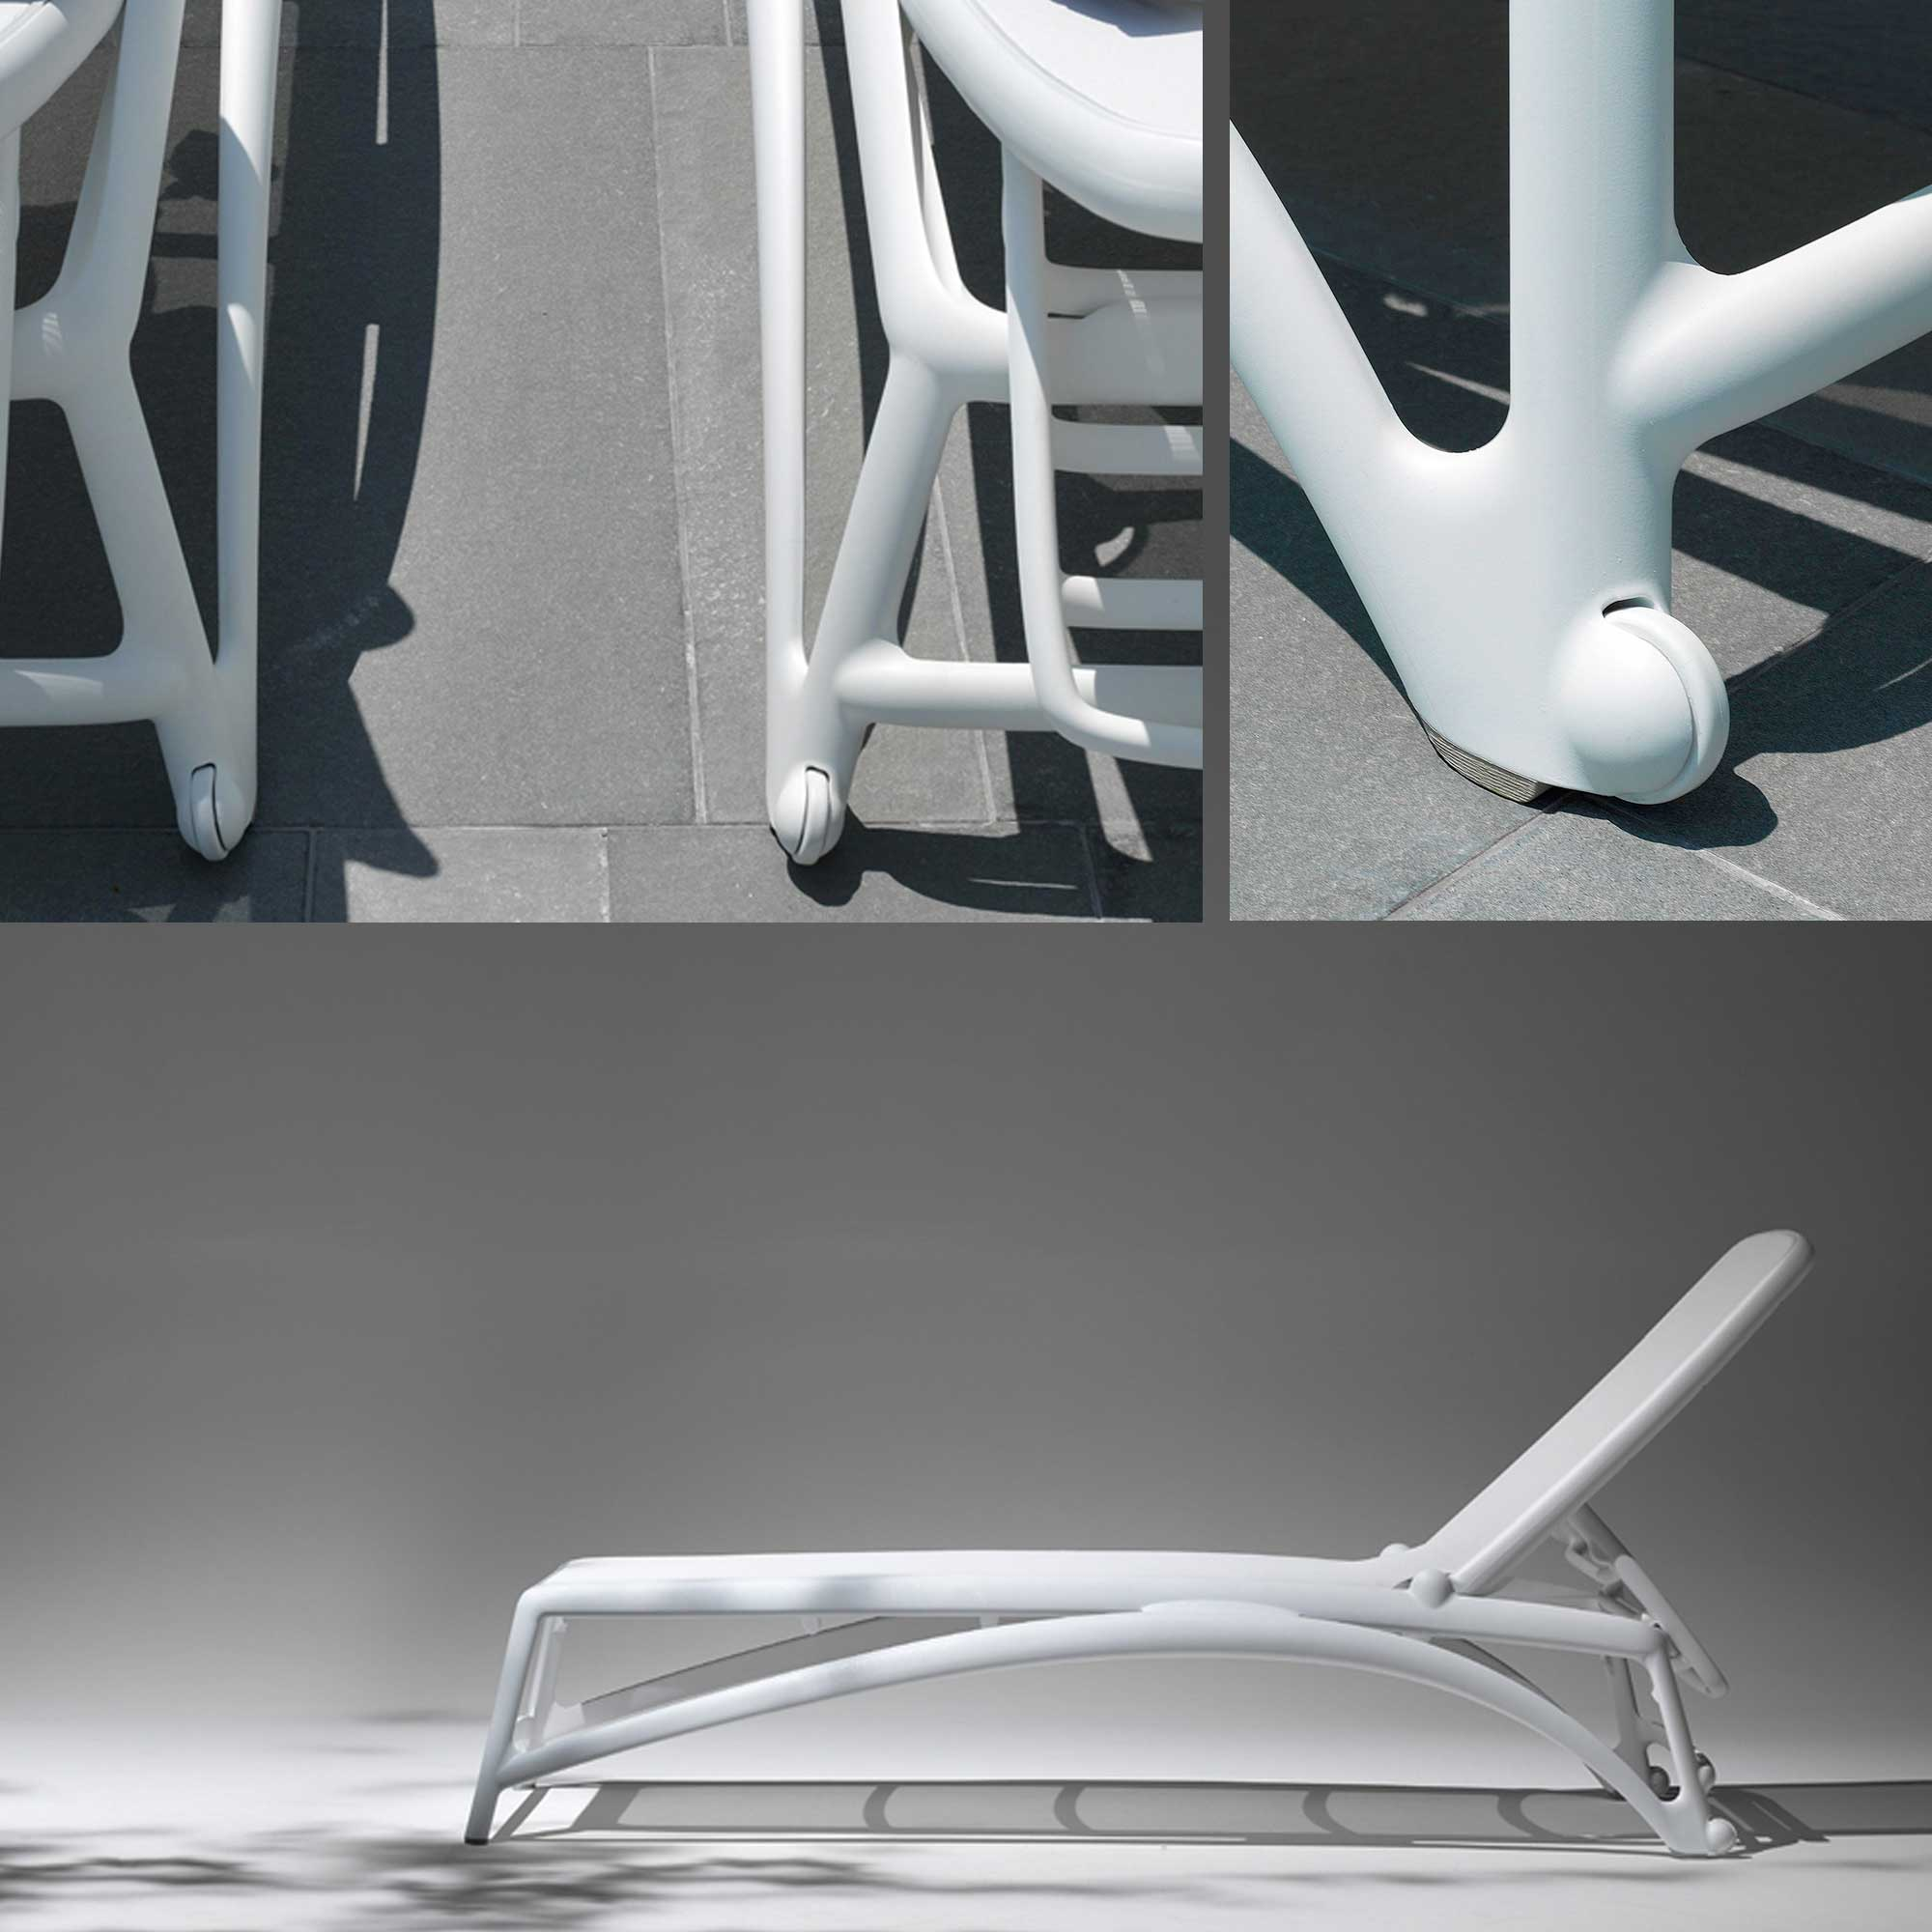 Sunloungr chaise has integrated wheels no parts to rust